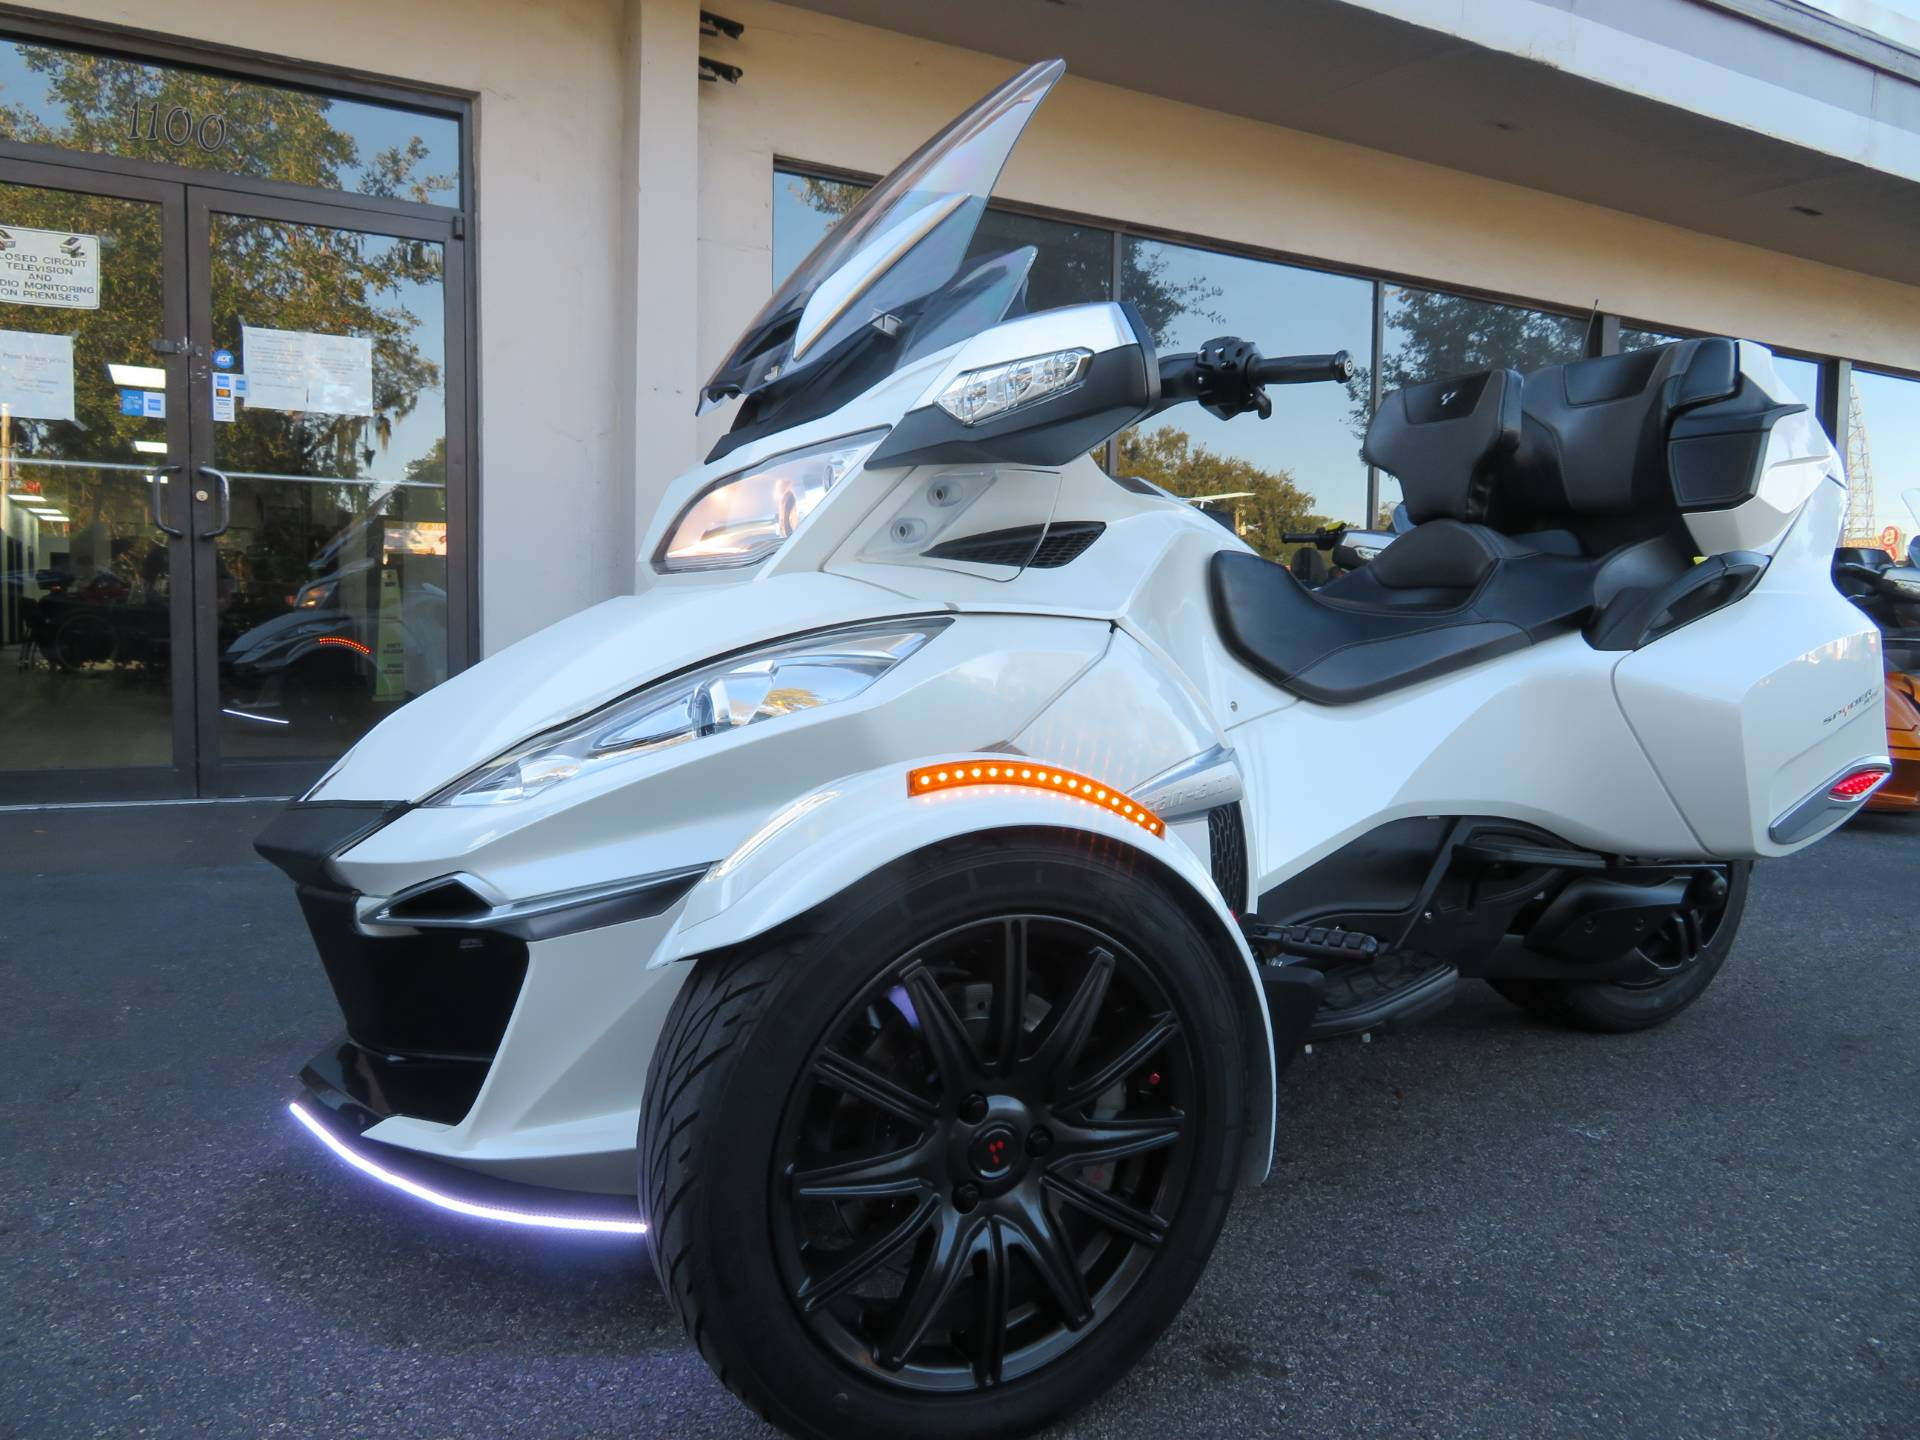 2016 Can-Am Spyder RT-S SE6 in Sanford, Florida - Photo 6